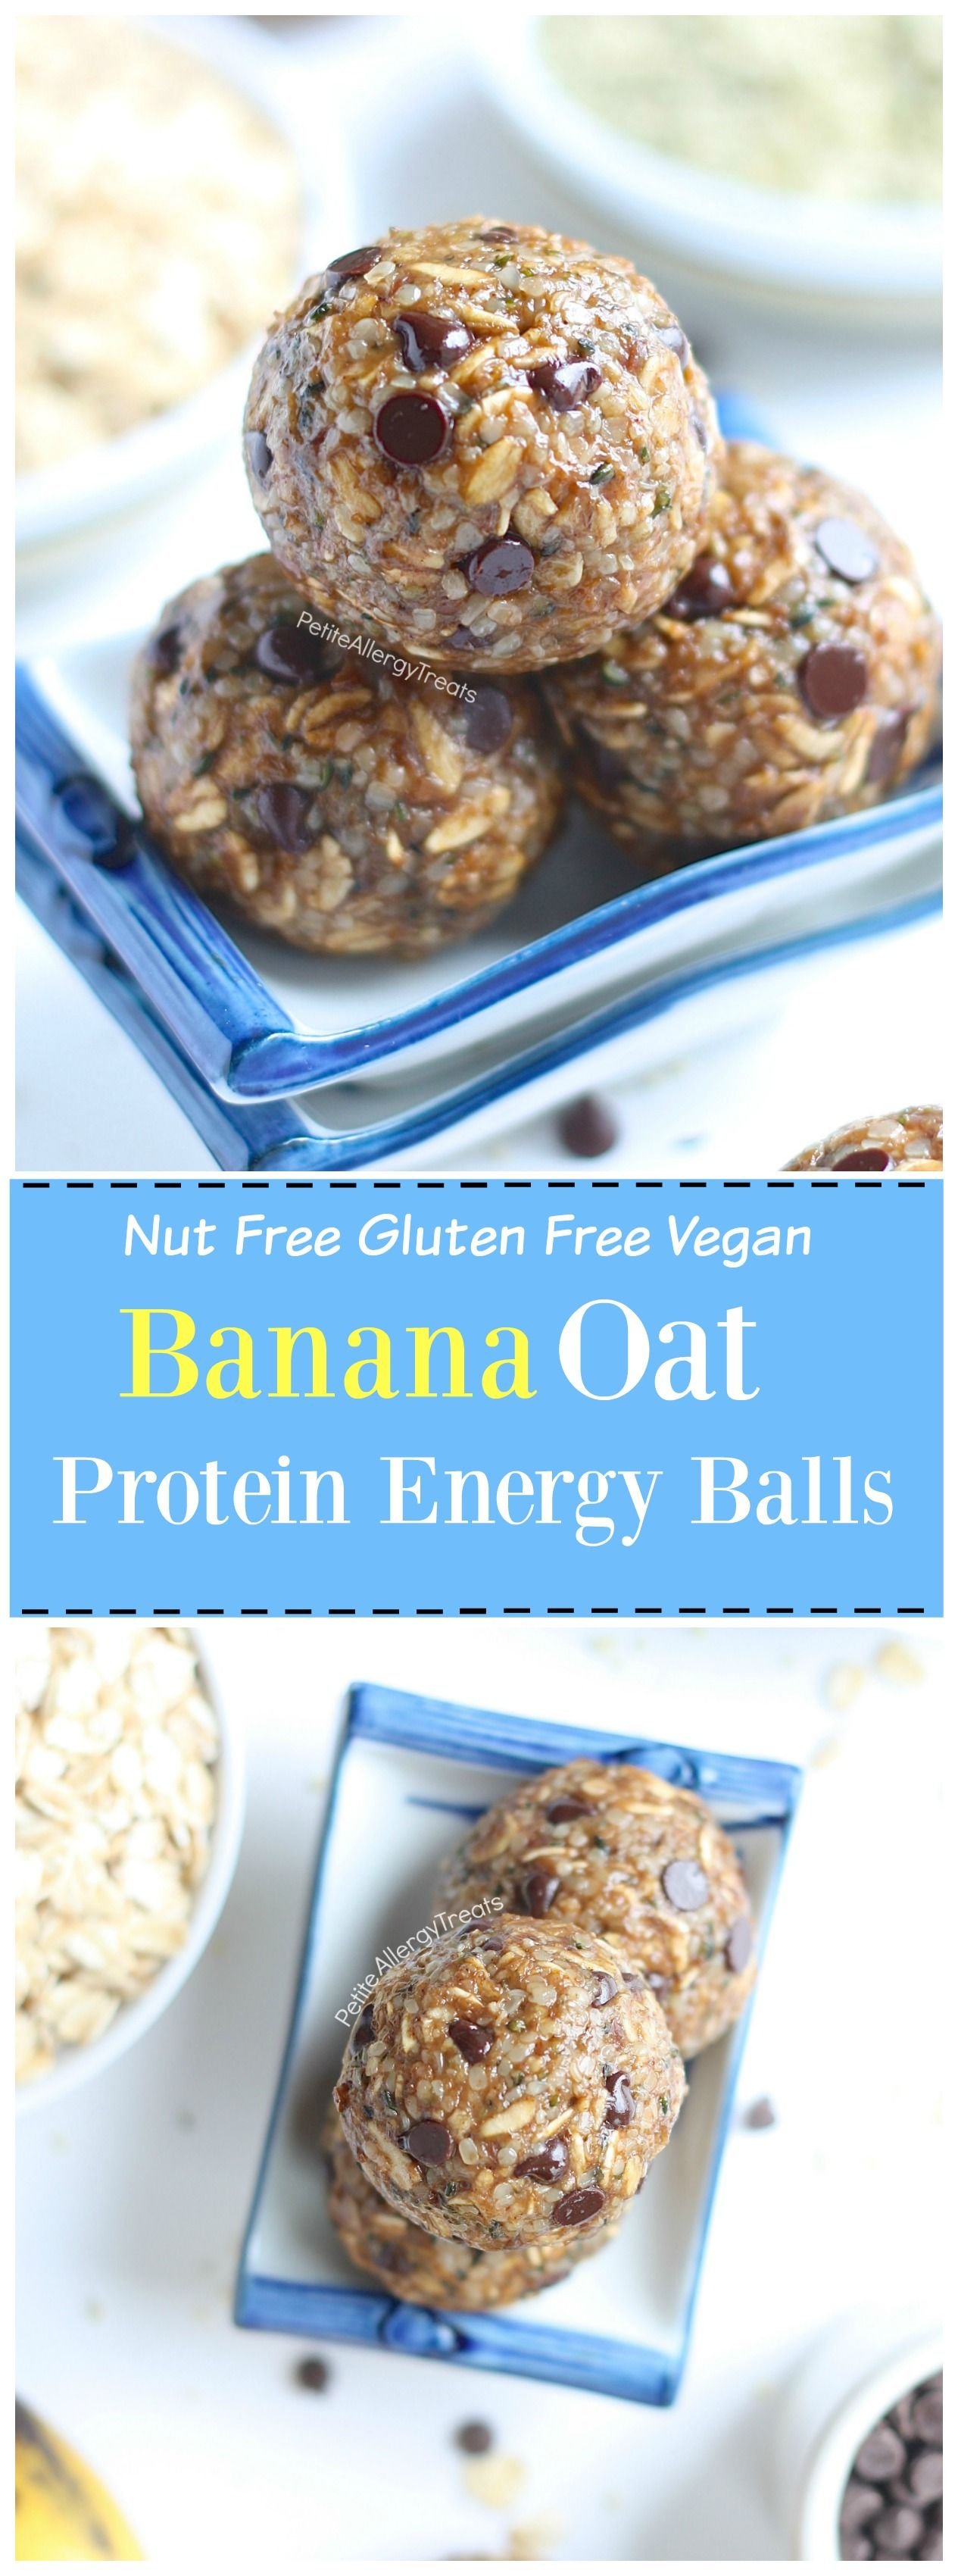 Nut Free Banana Oat Protein Energy Balls - Petite Allergy Treats